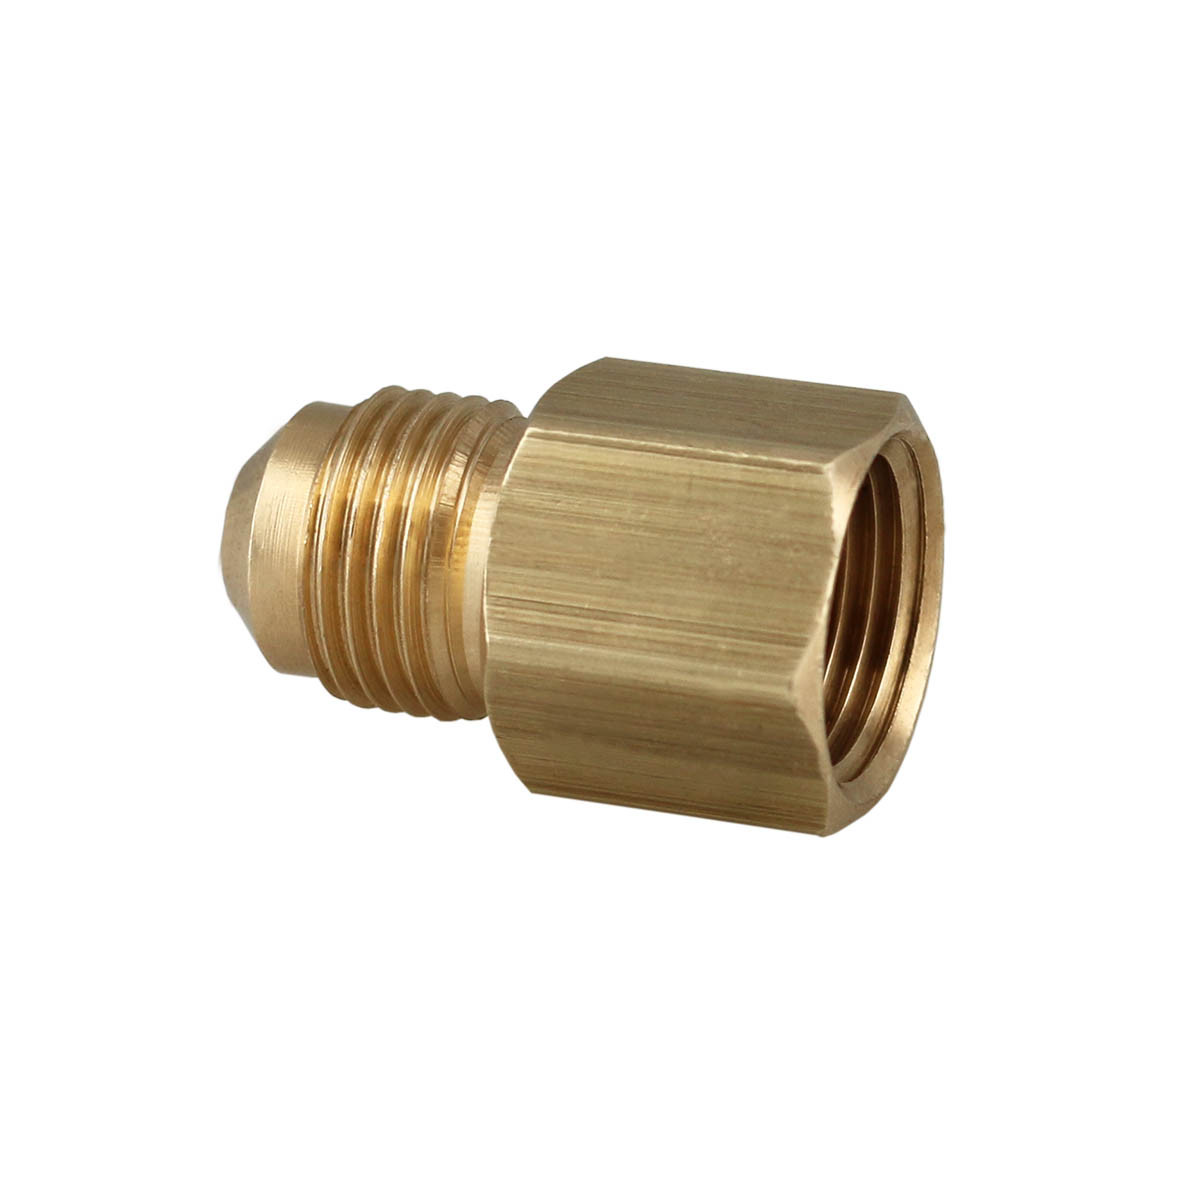 Quot male flare female pipe thread propanegear